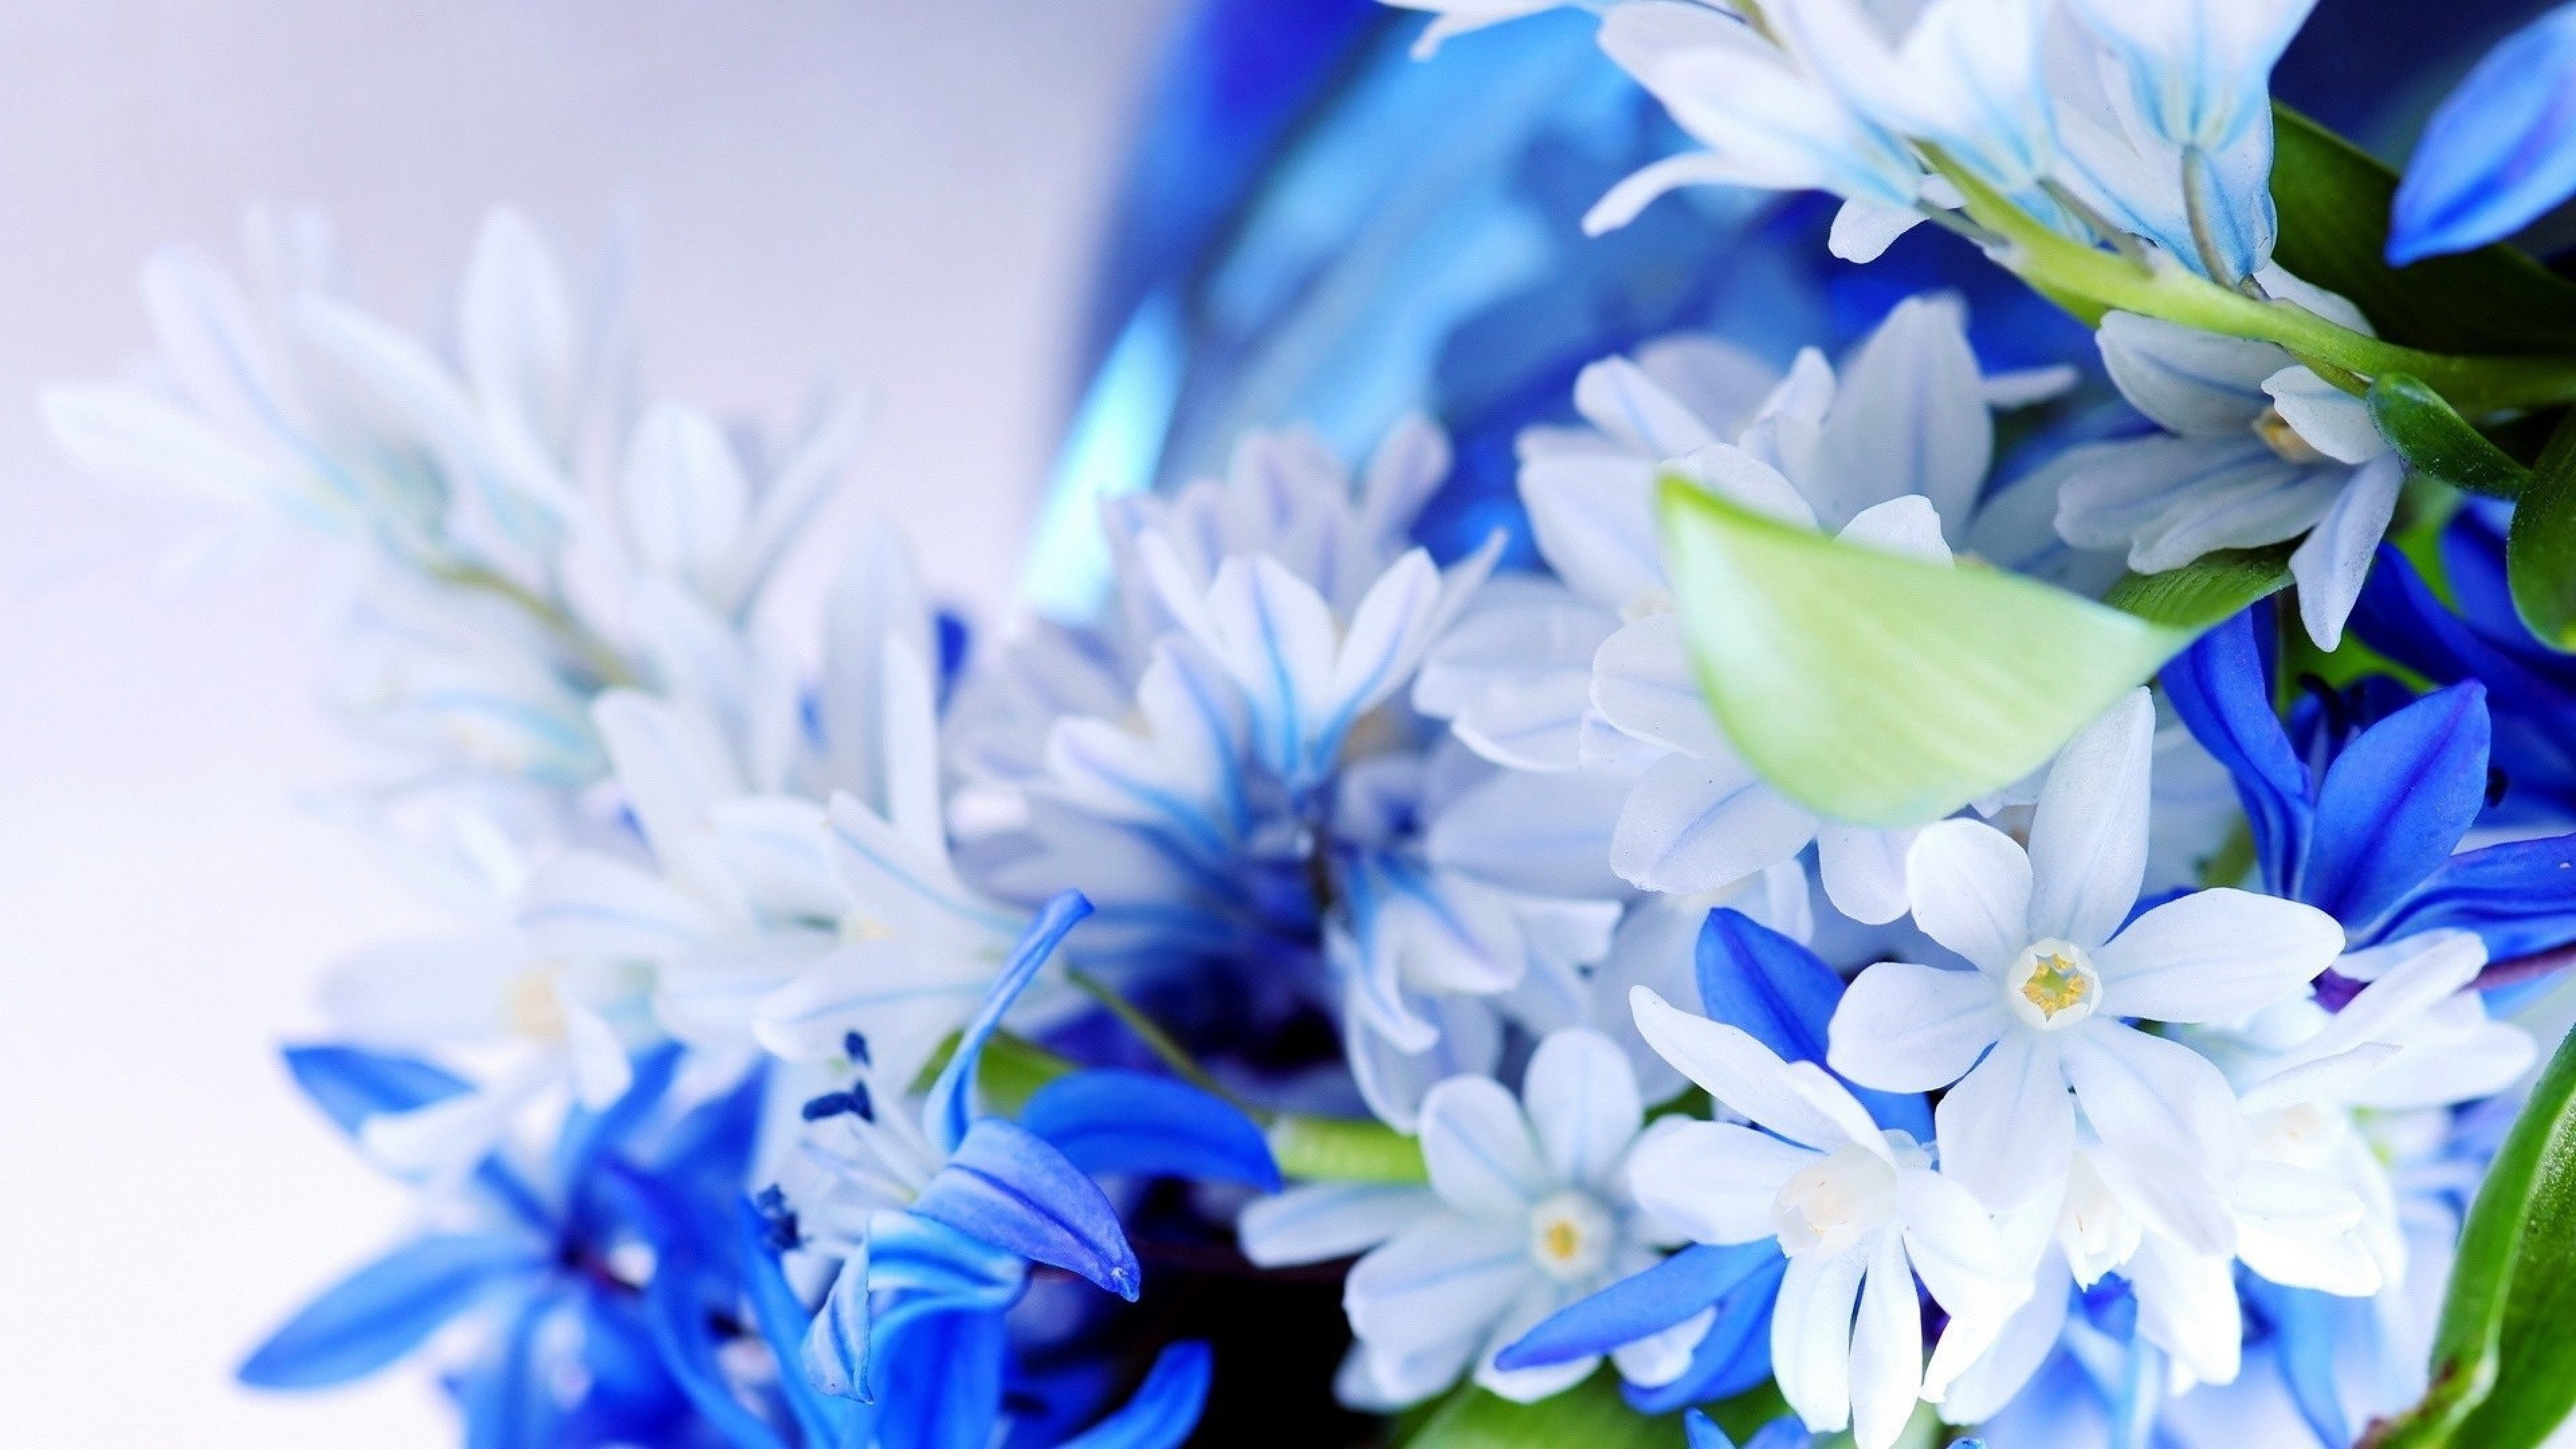 4K Blue Flowers Wallpapers High Quality | Download Free